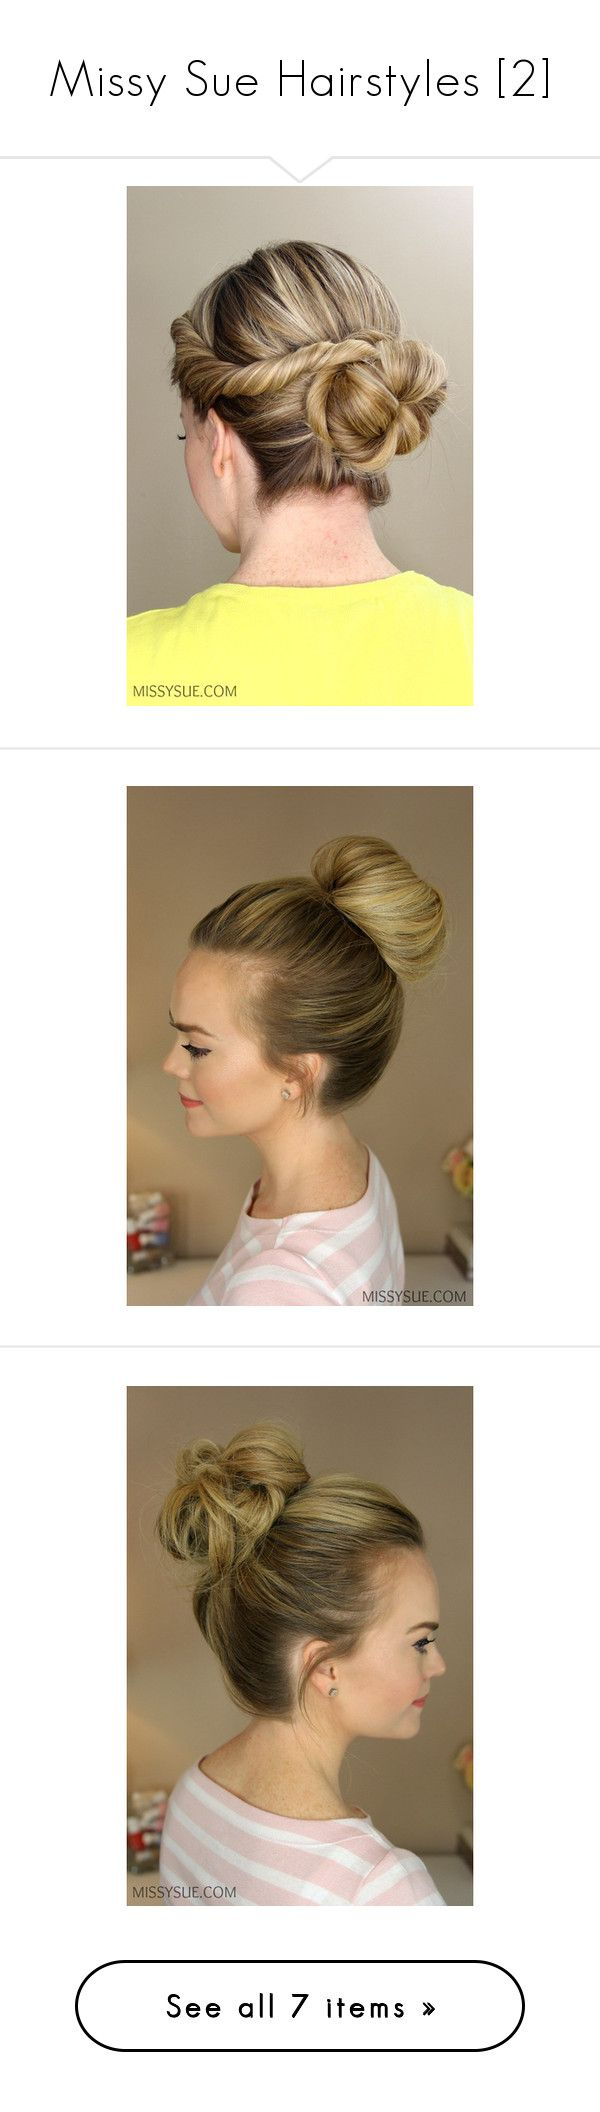 """""""Missy Sue Hairstyles [2]"""" by demiwitch-of-mischief ❤ liked on Polyvore featuring accessories, hair accessories, hair, braided headband, woven headbands, braided hairband, twisted headband, head wrap headband, hair band accessories and holiday hair accessories"""